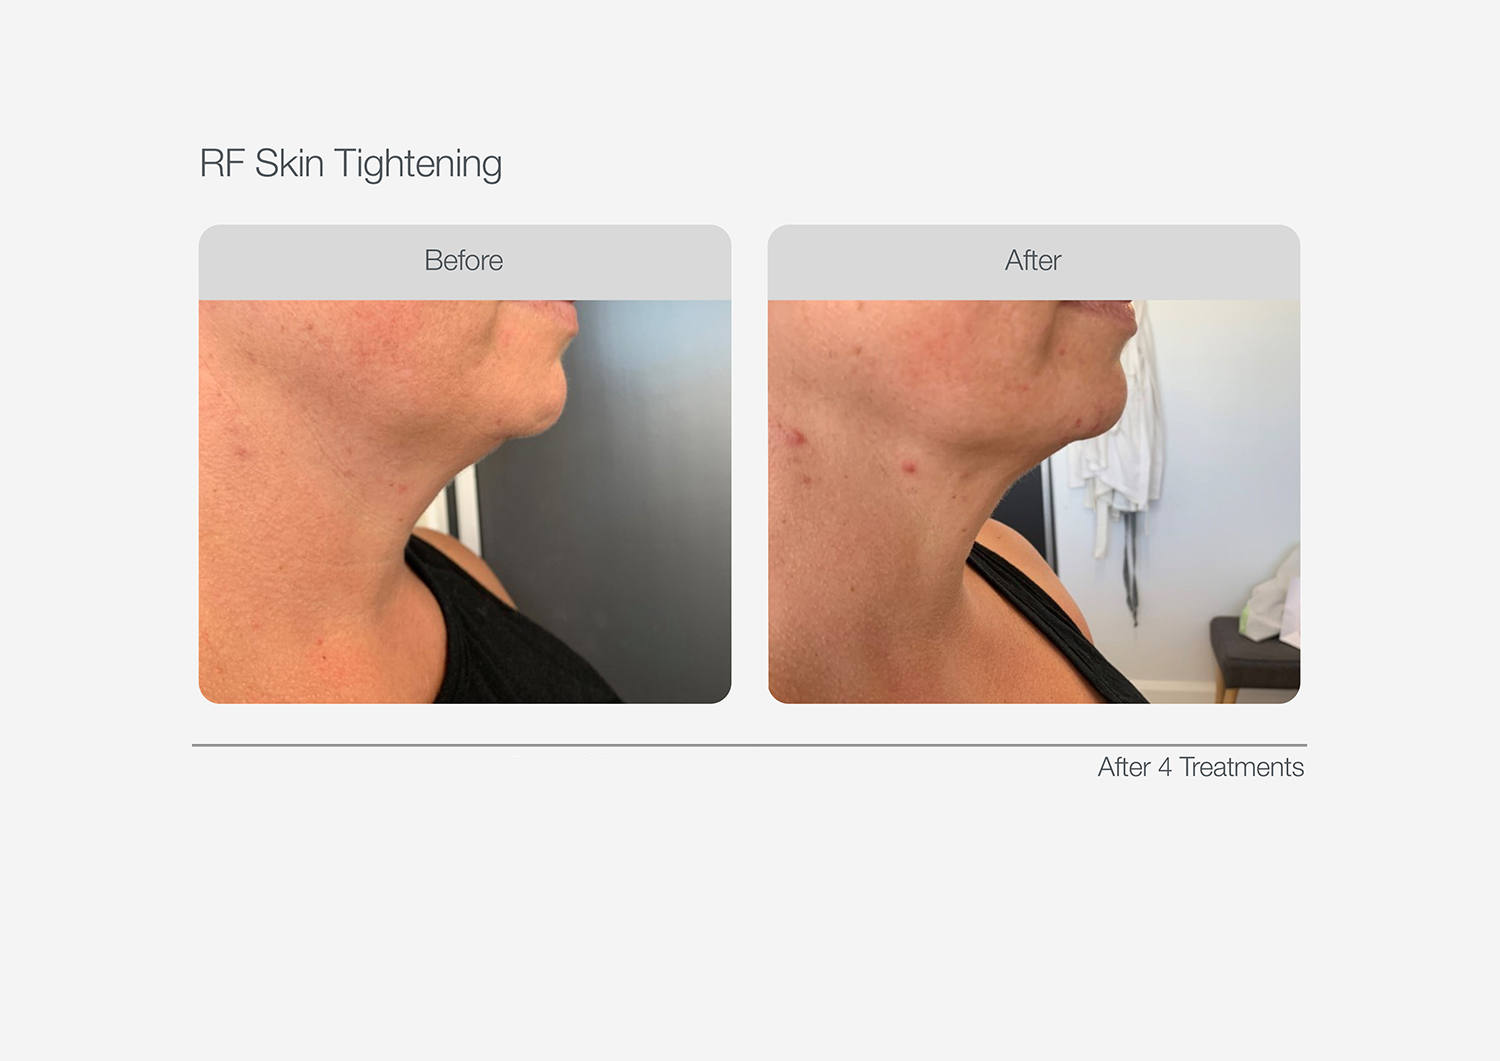 RF-Skin-Tightening-Before-After-05